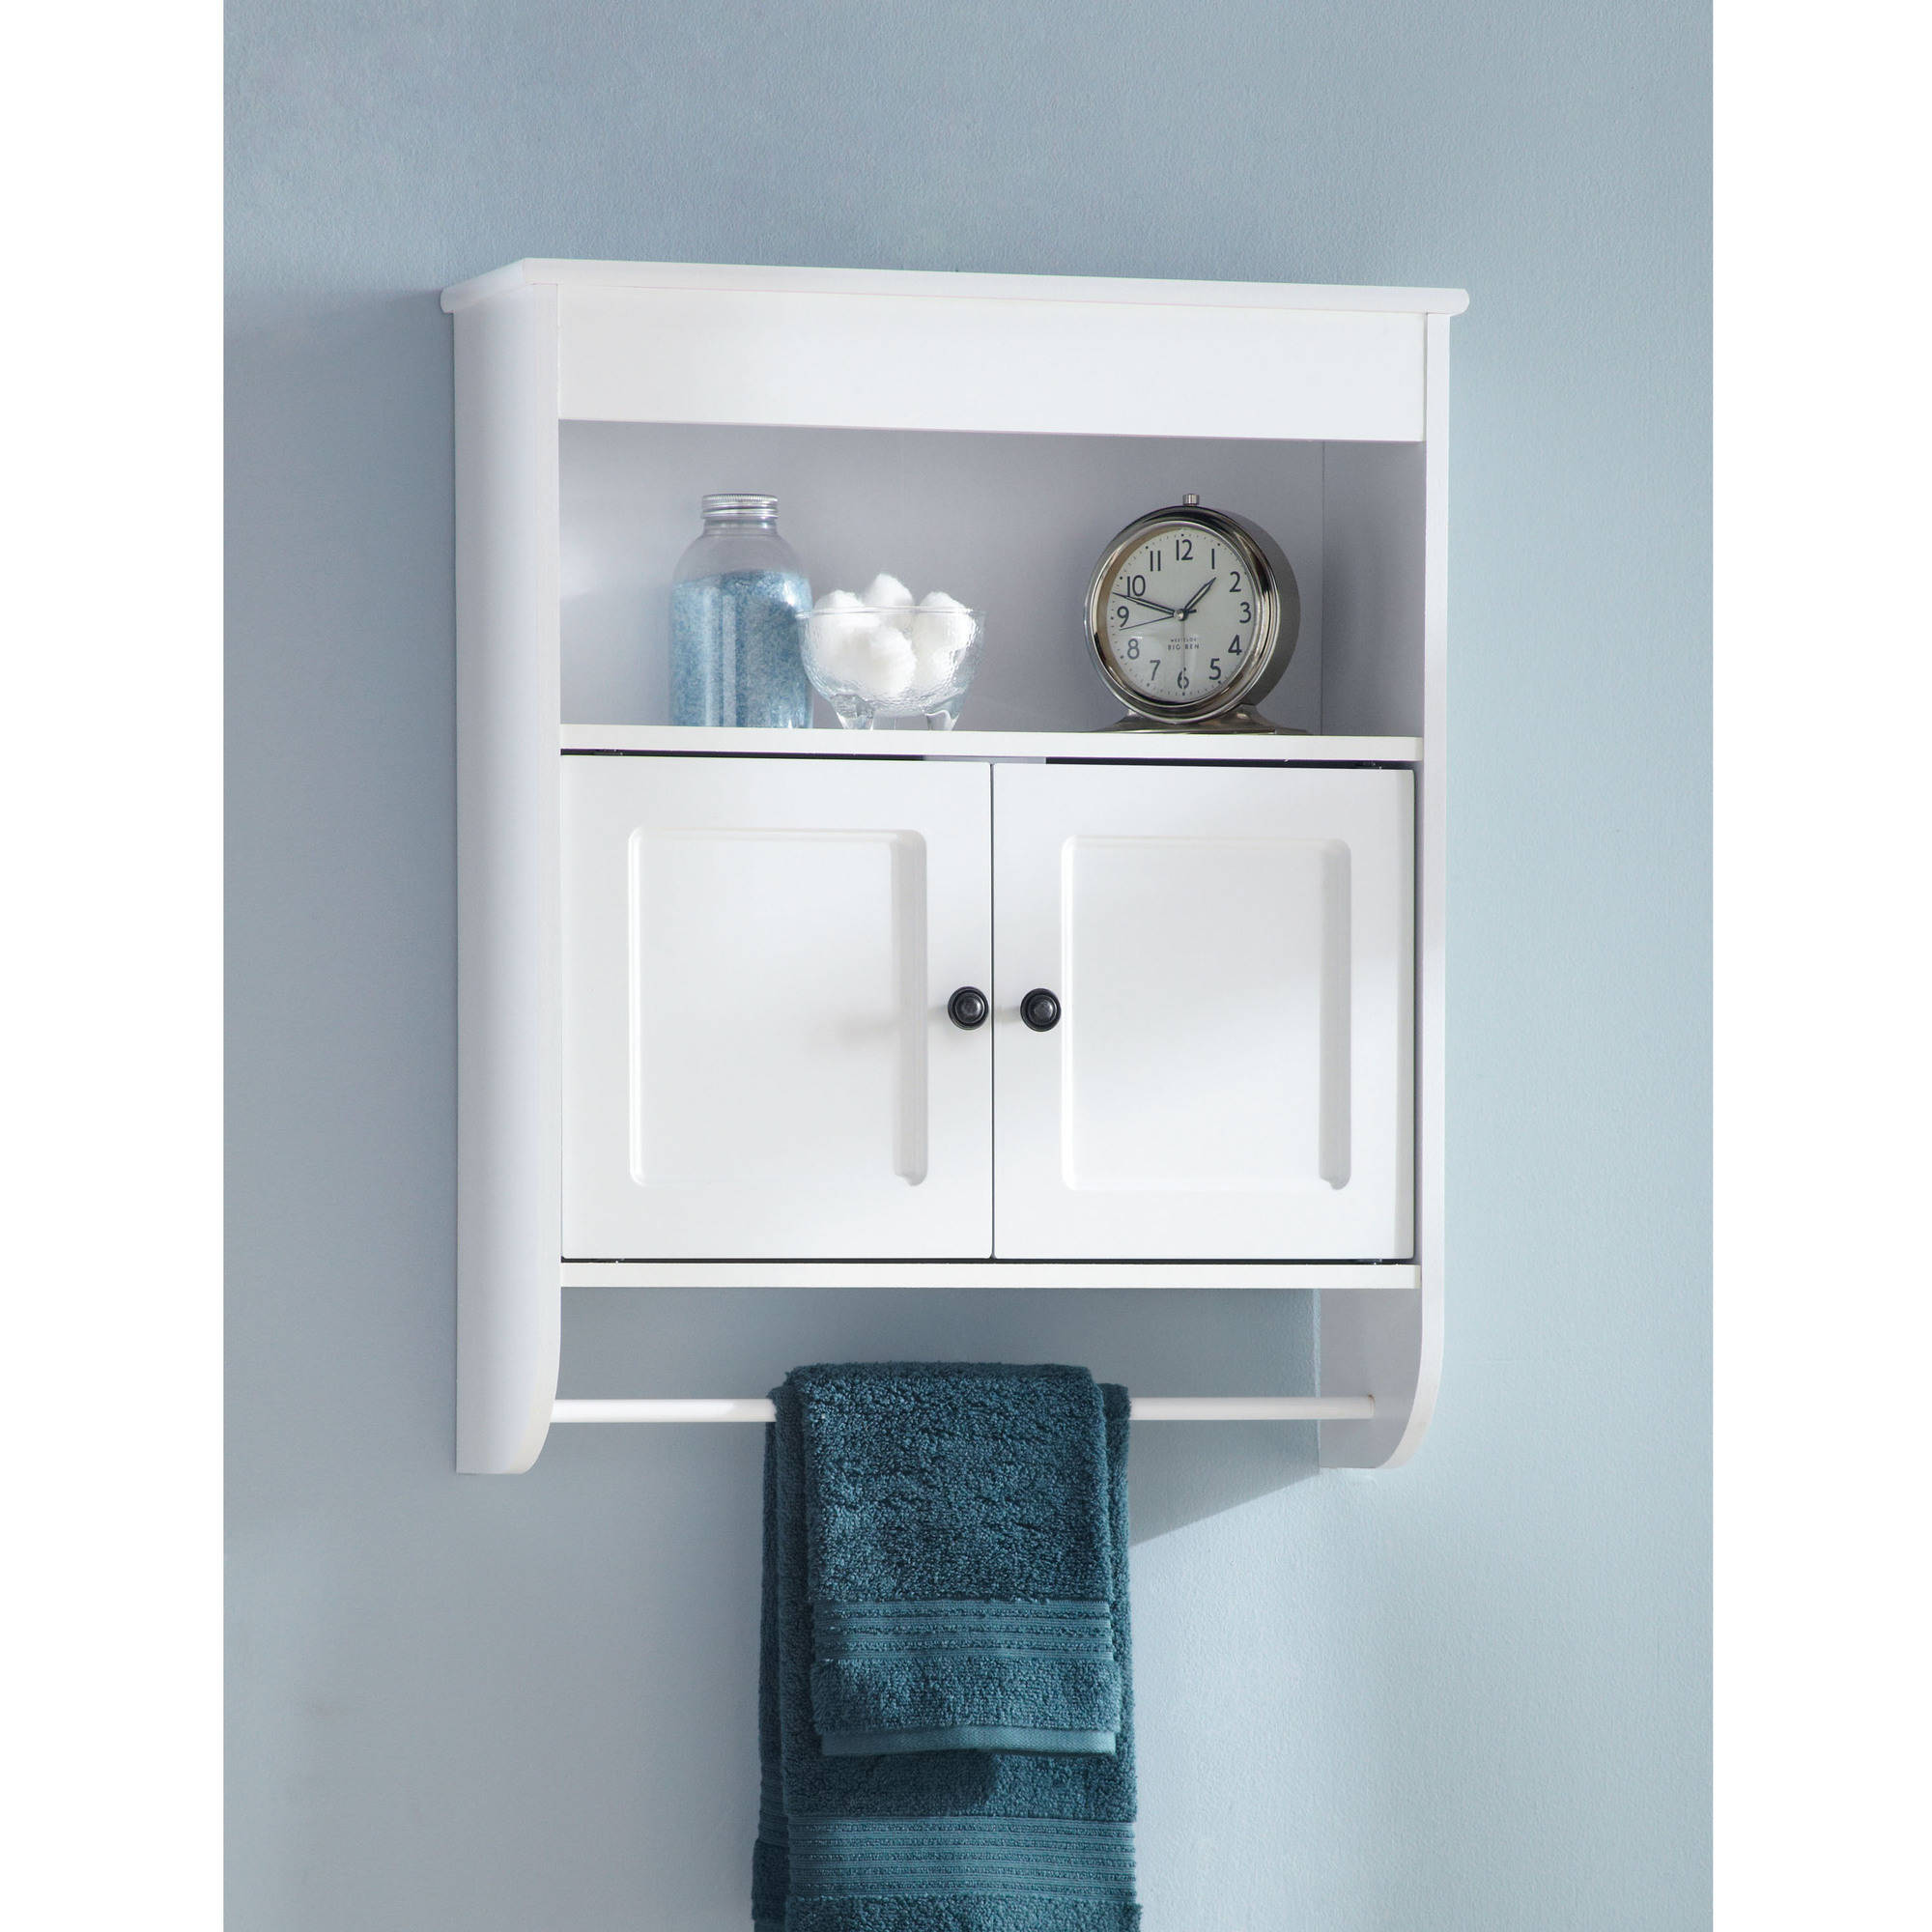 Bathroom wall cabinet white - Bathroom Wall Cabinet White 22